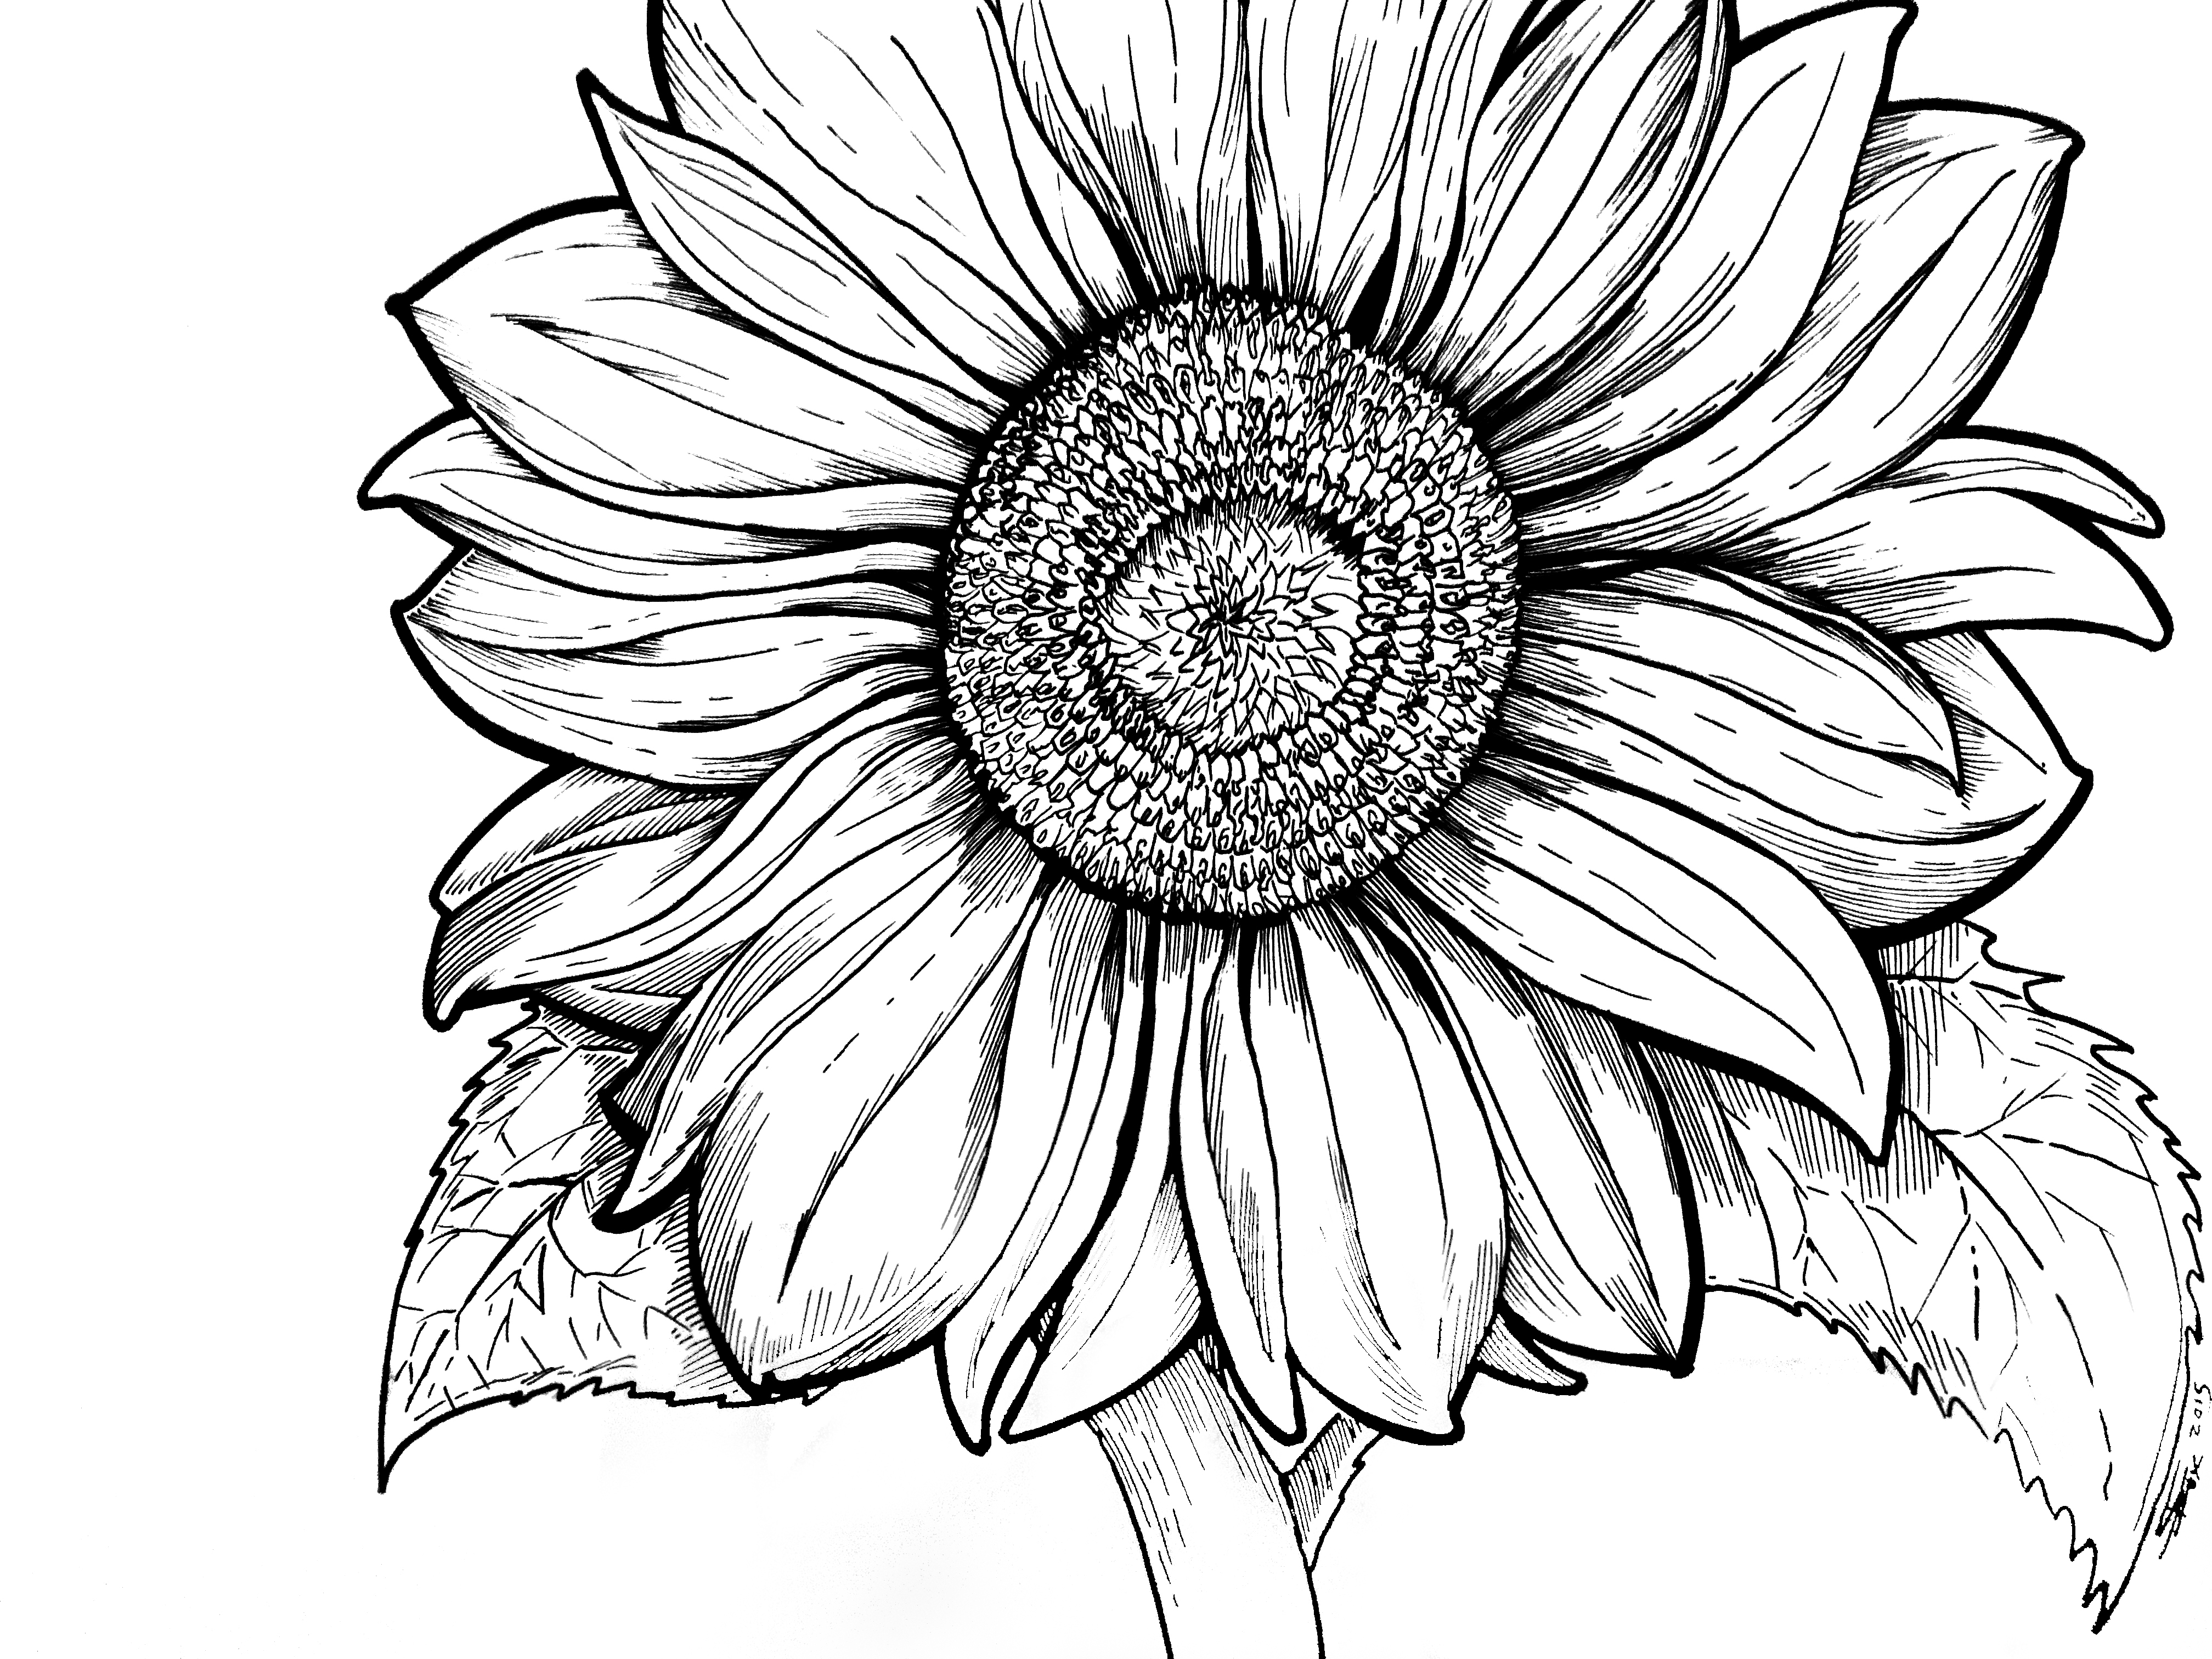 coloring pictures of sunflowers sunflower is blooming coloring page sunflower is blooming of sunflowers pictures coloring